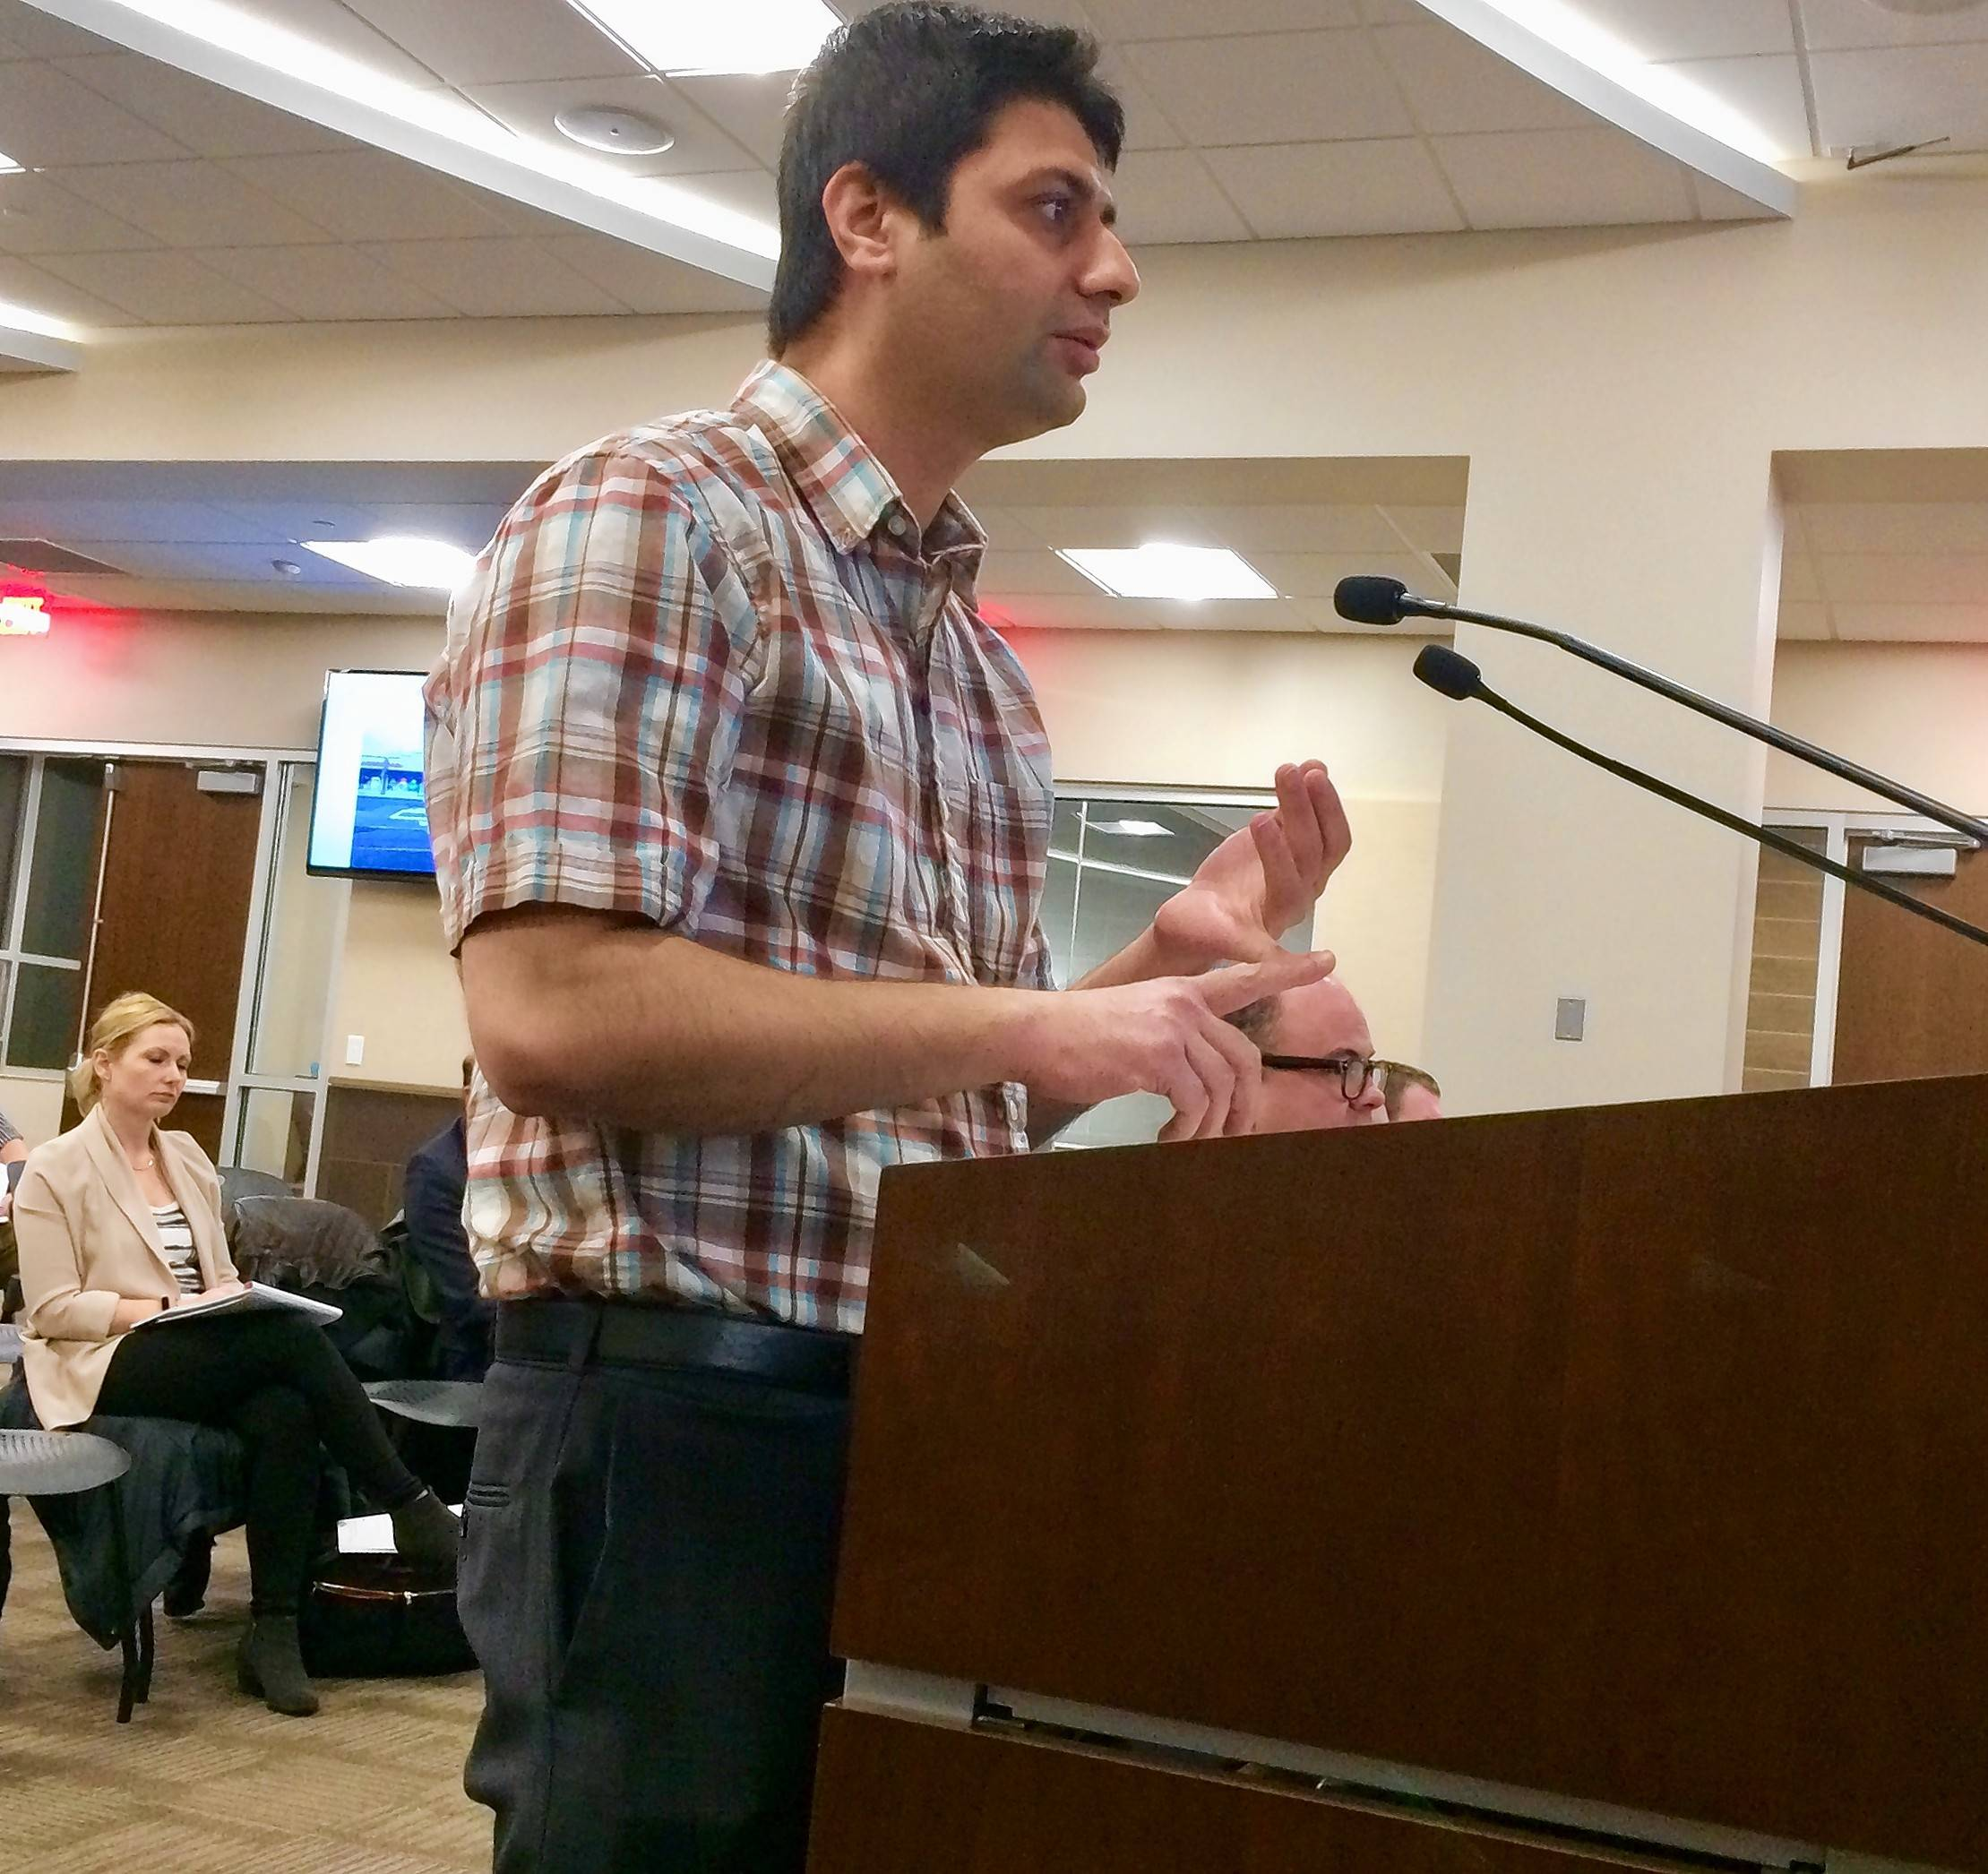 Dr. Sourabh Dhawan makes an unsuccessful pitch to the Palatine village council this week for a proposal to open an animal hospital at Northwest Highway and Quentin Road.